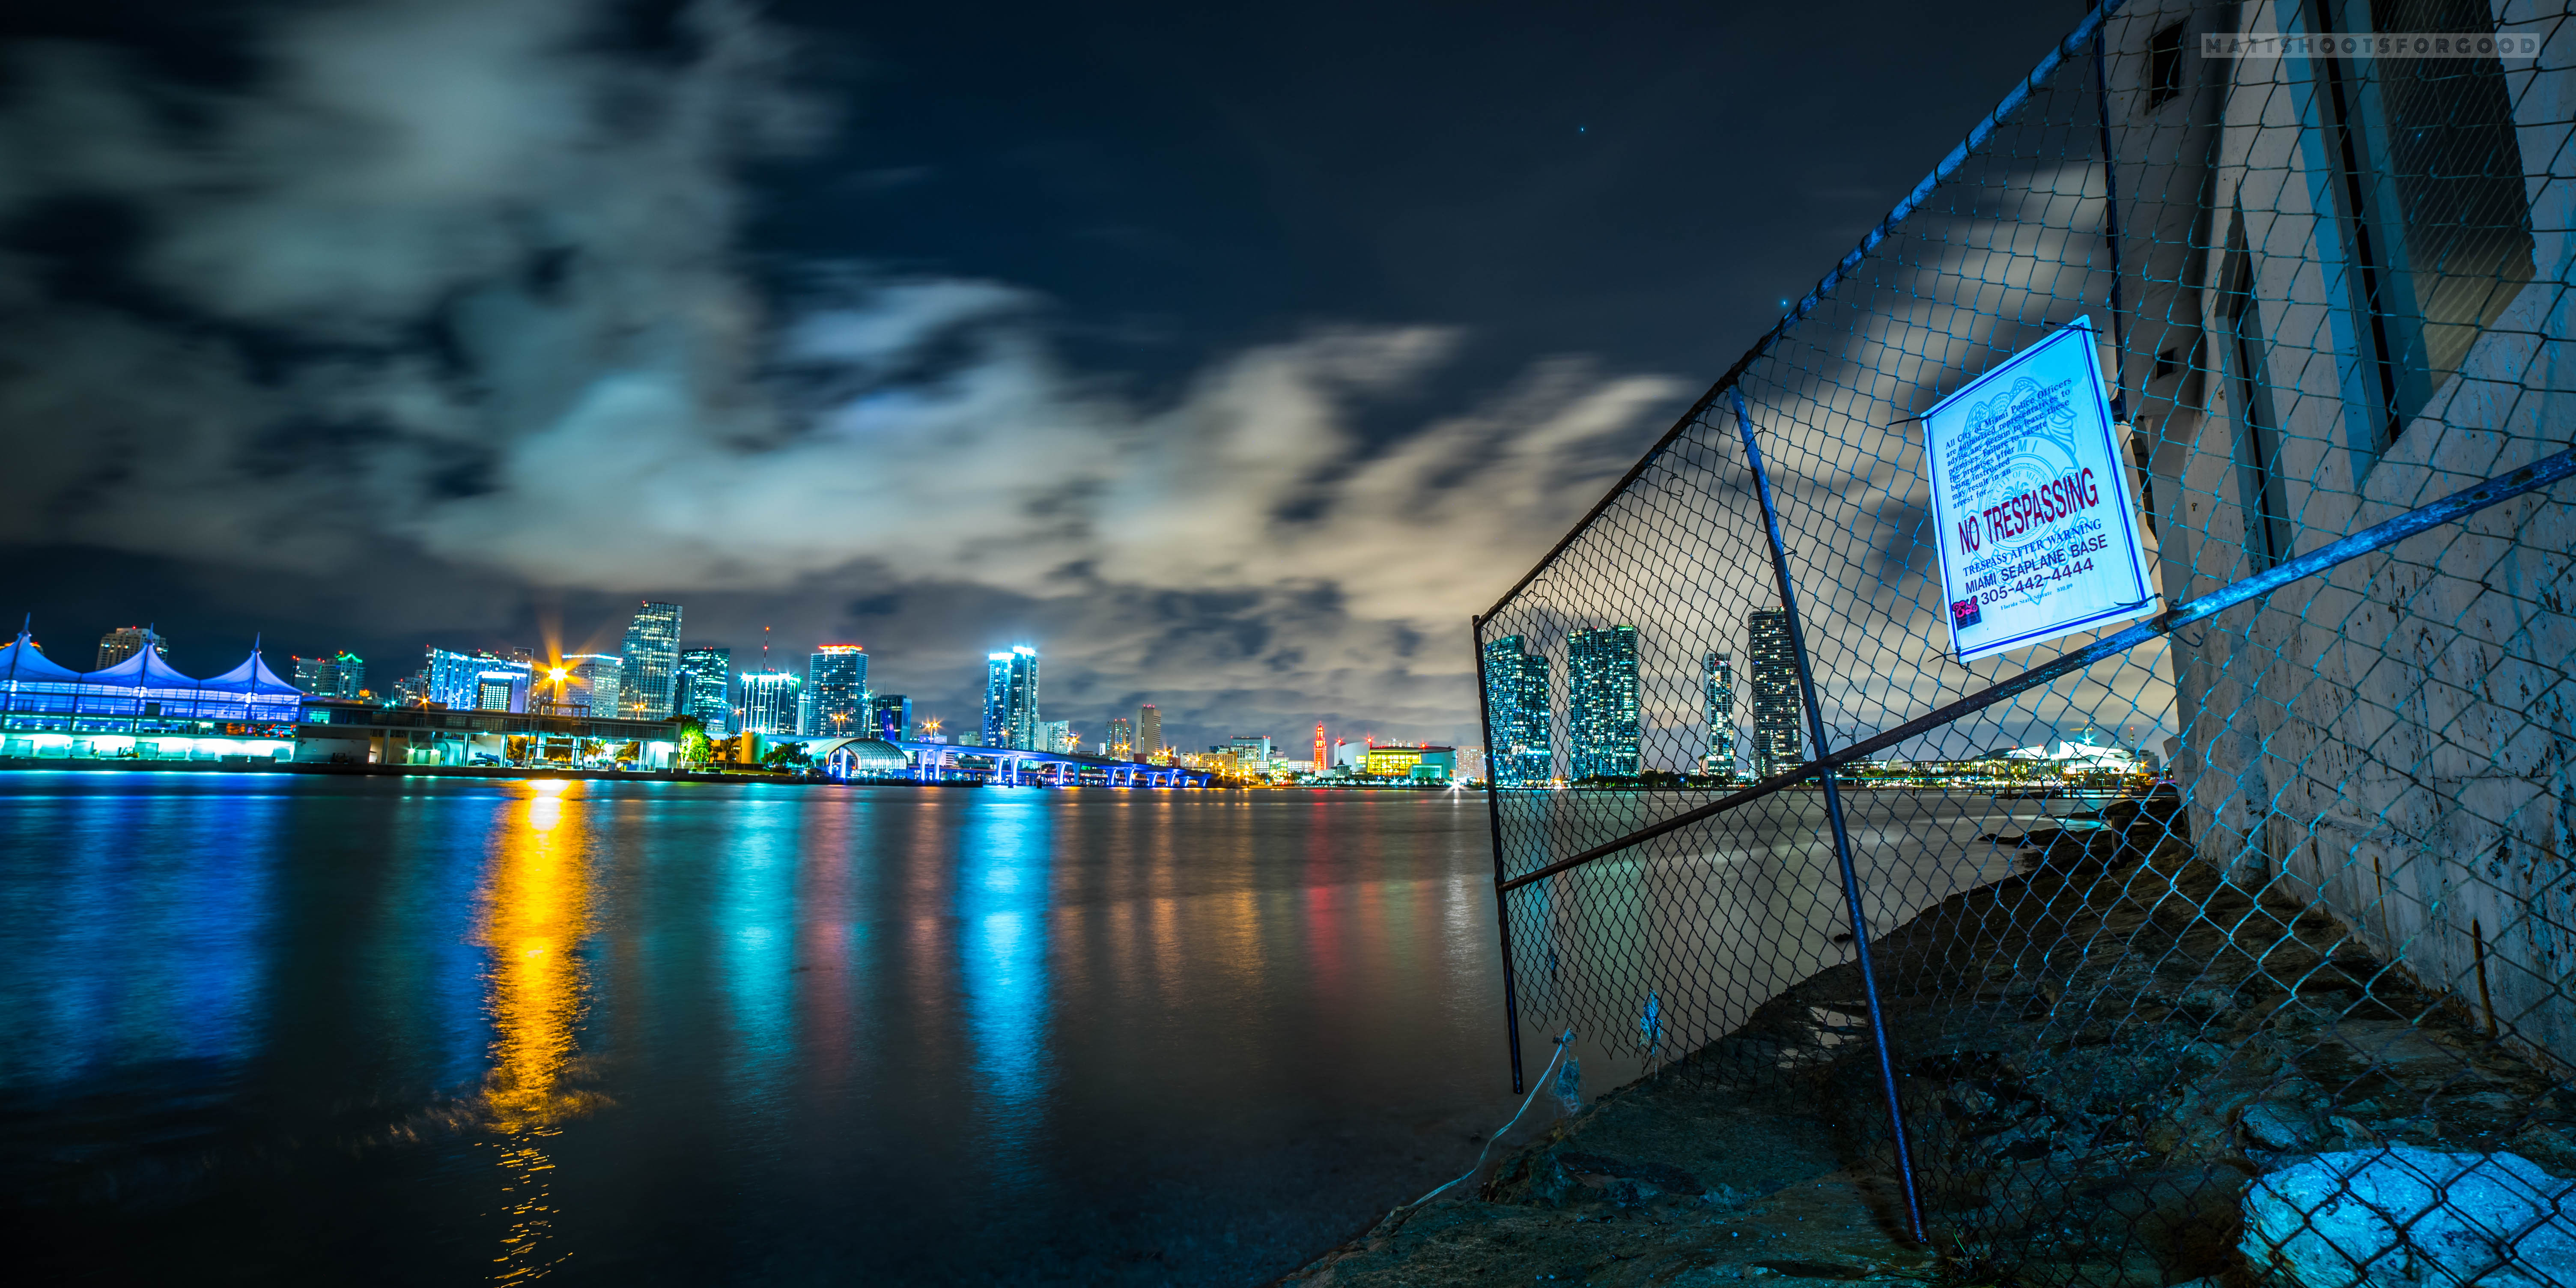 Miami - Biscayne Bay Fence